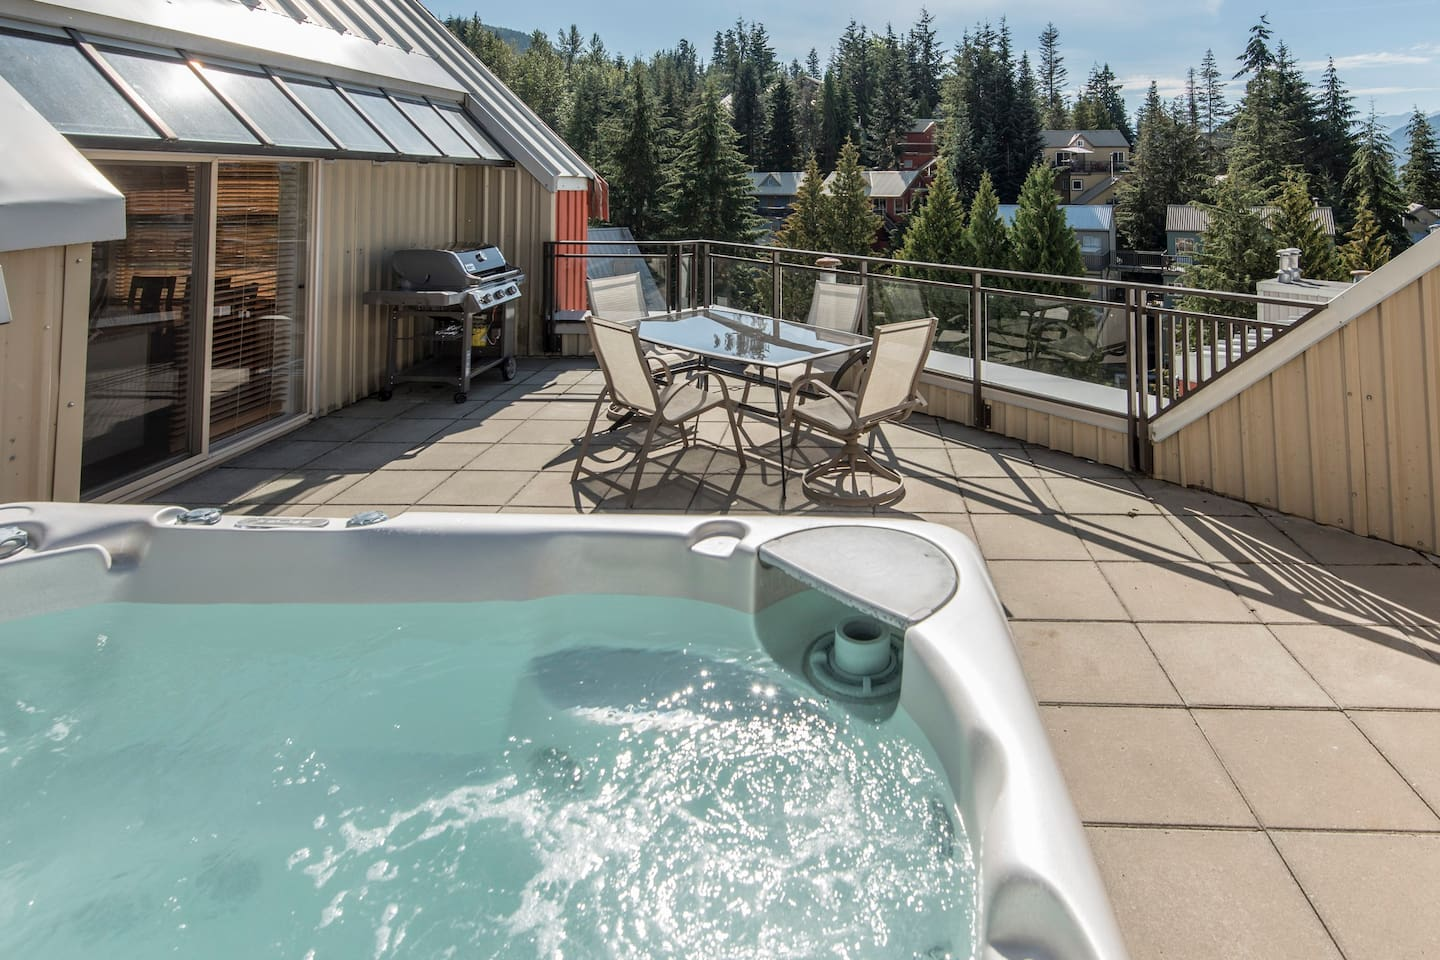 Private Hot Tub on Deck with Outdoor Dining Area